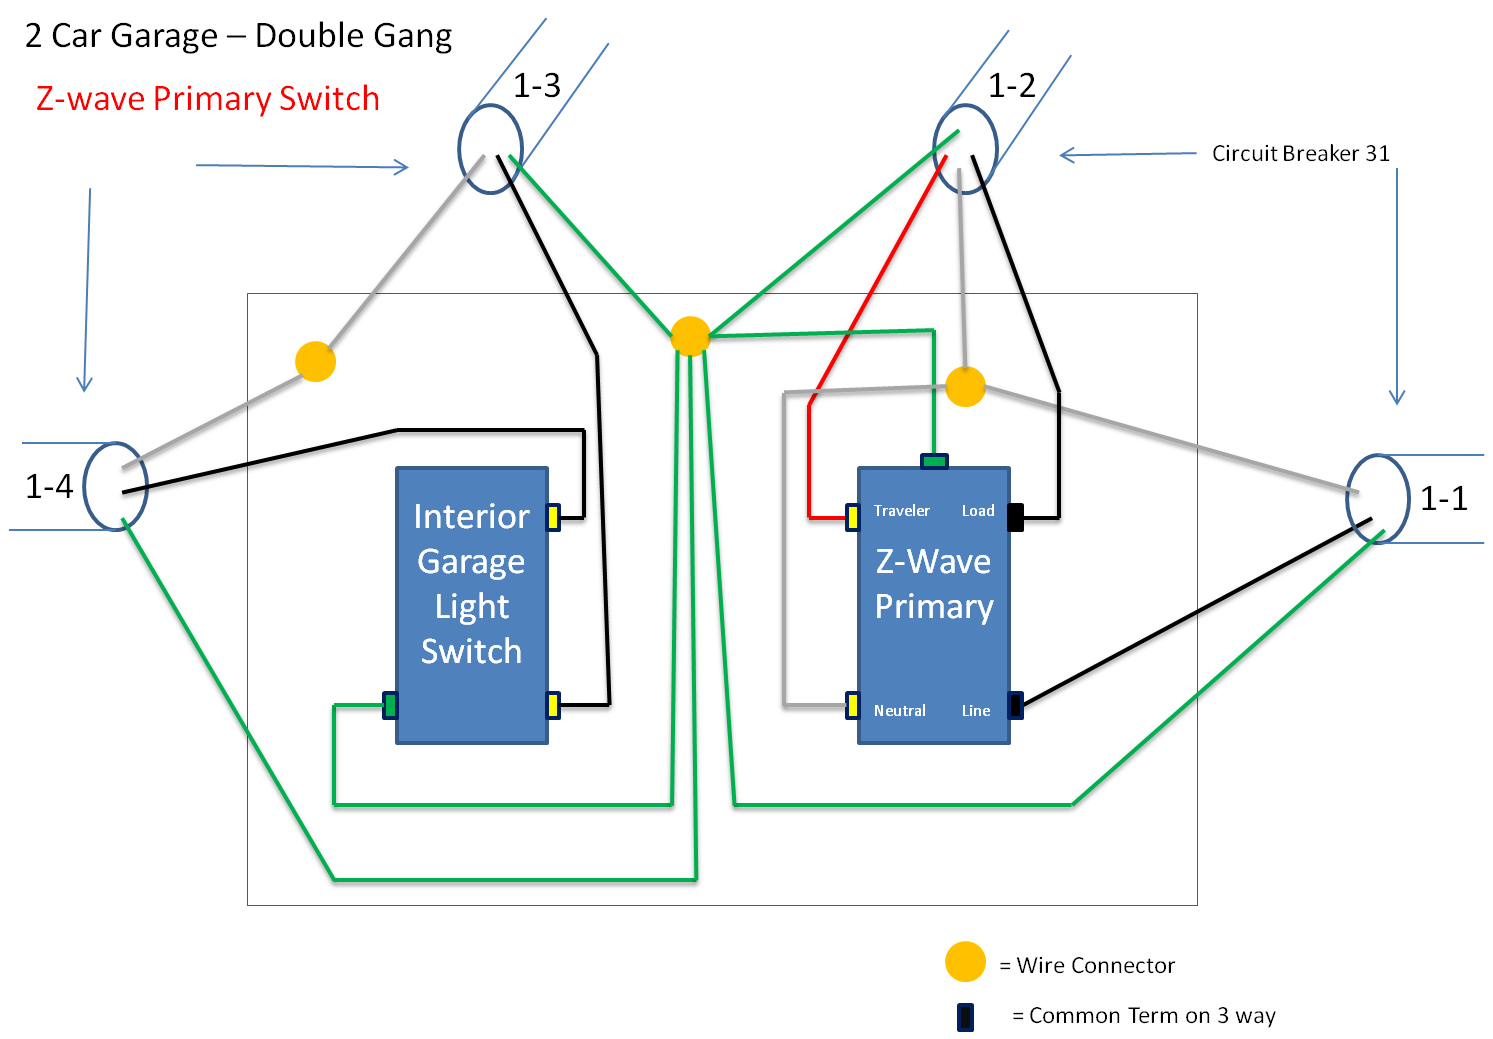 Wiring 3 Way Z Wave Diagram Schemes Electrical Switch Trying To Wire In A Ge 45614 Light Kit Home Is Rh Justanswer Com Methods Multiple Lights